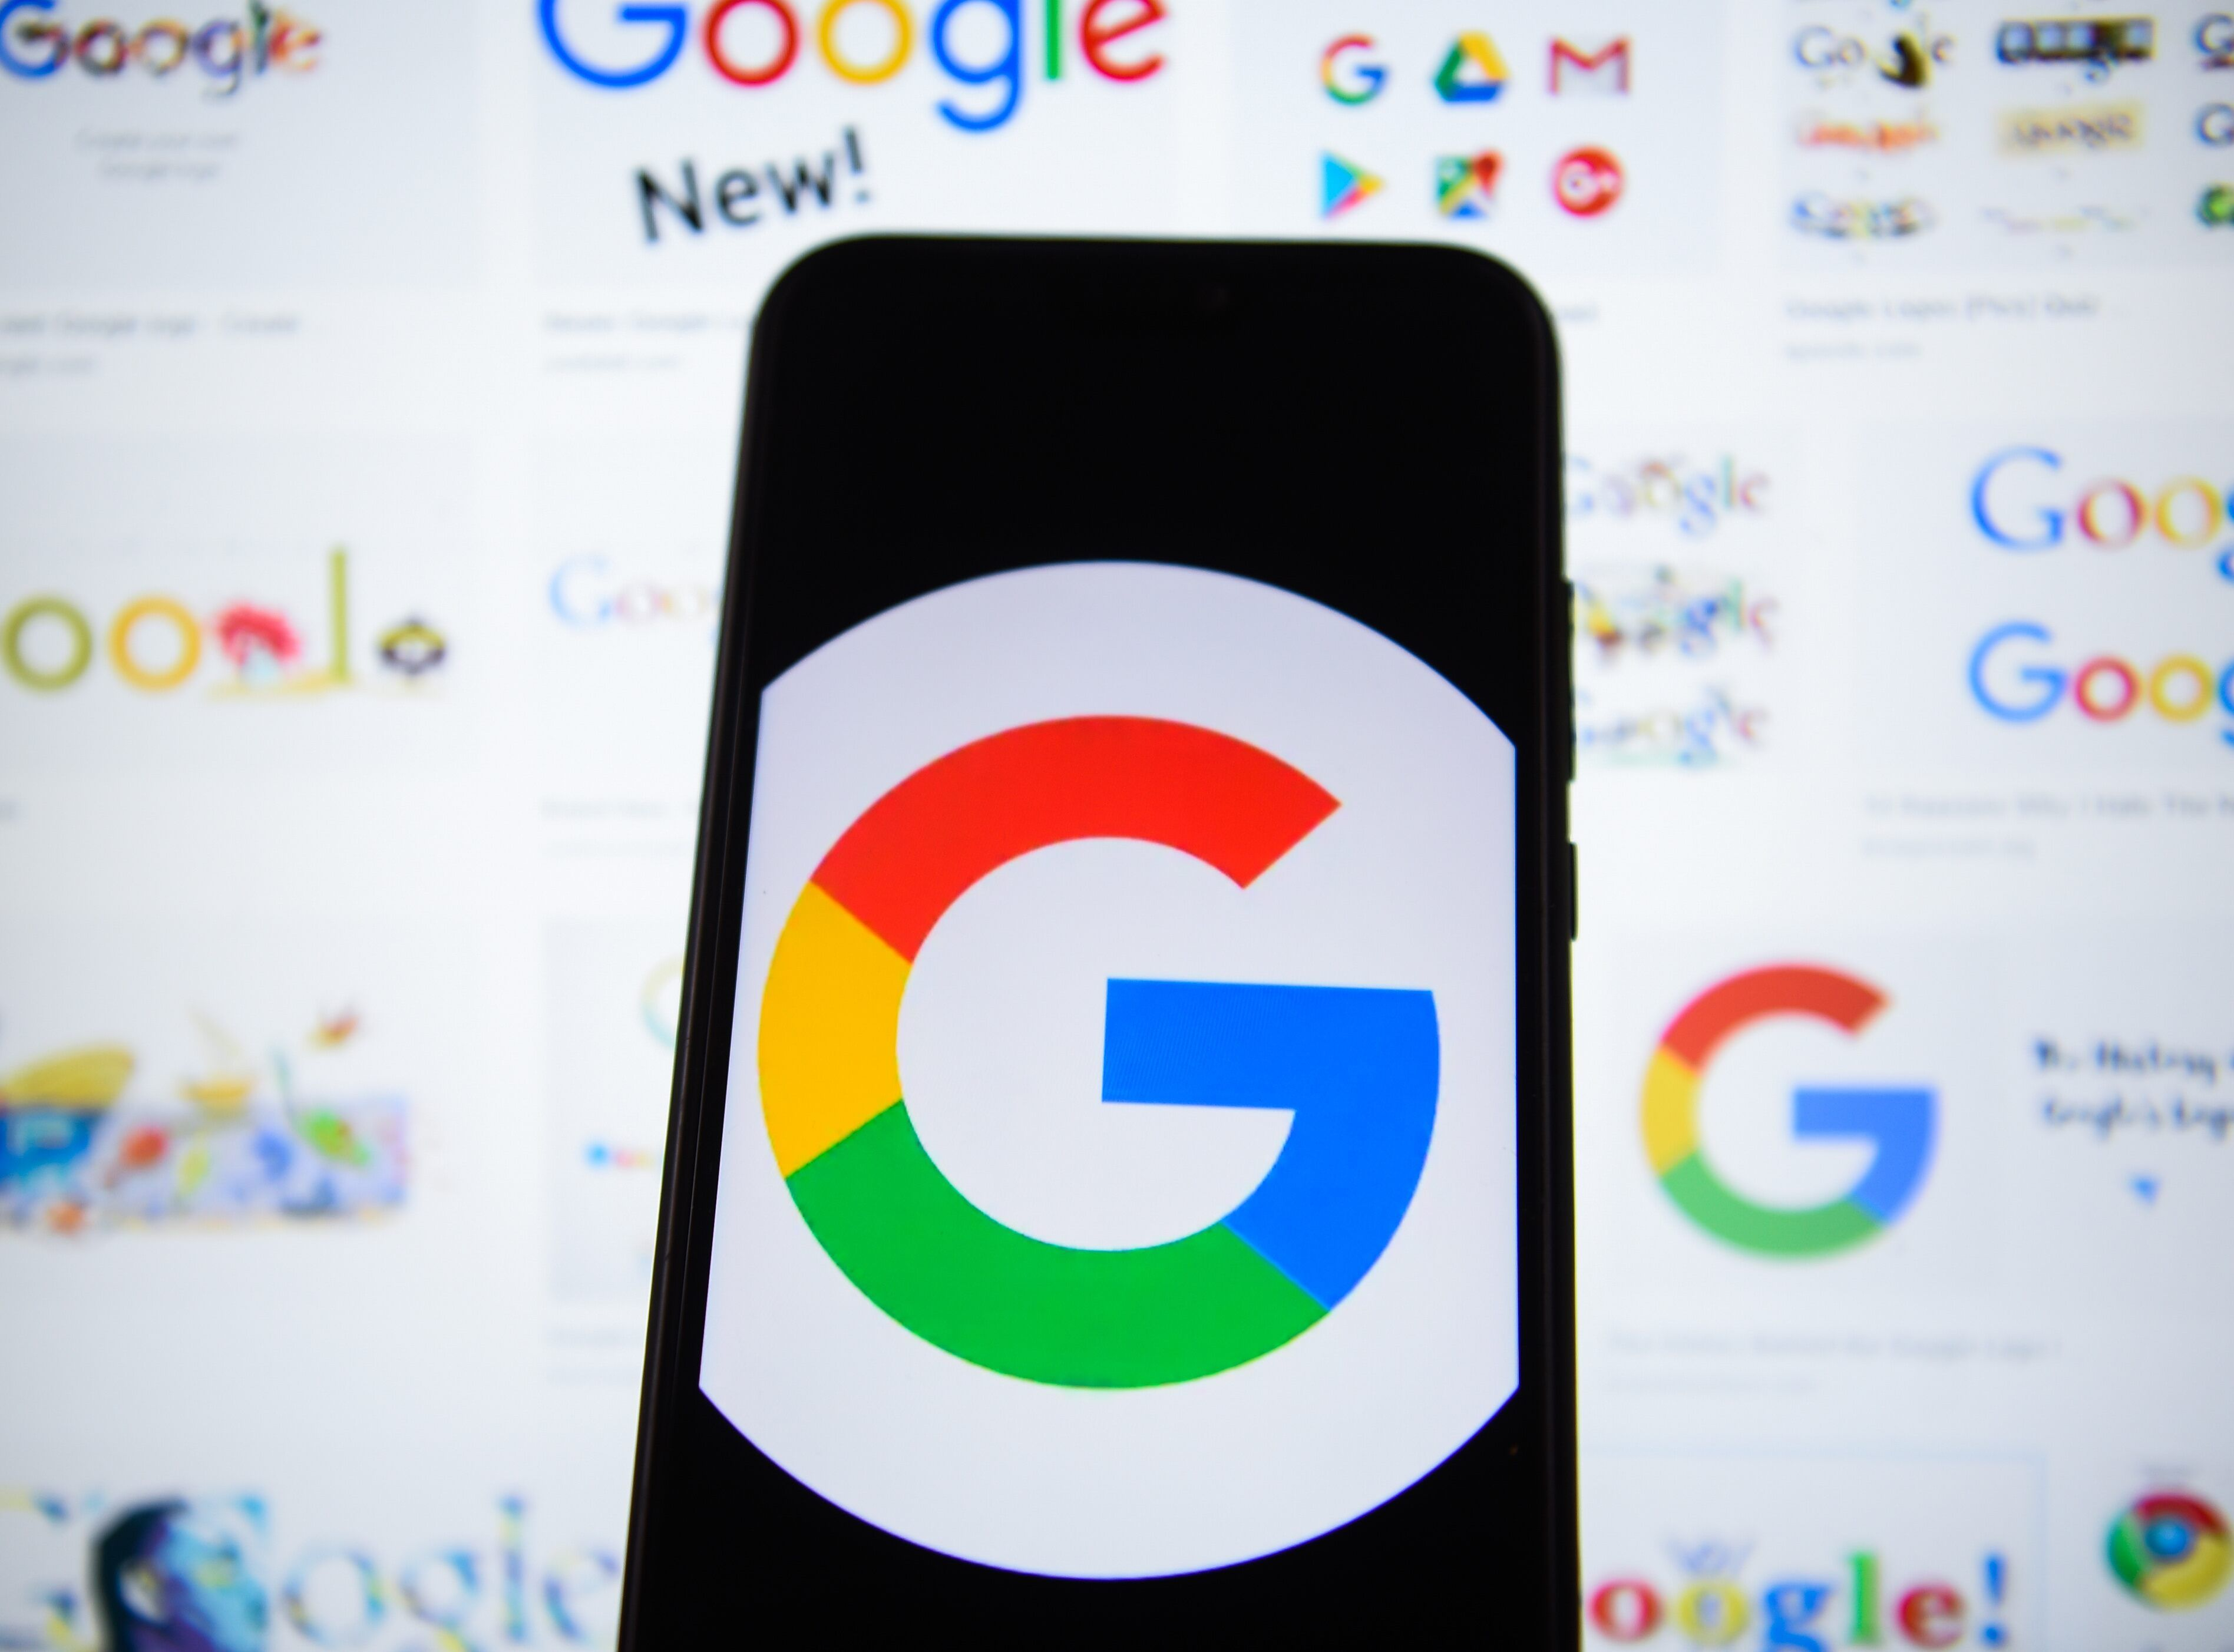 FOX NEWS Google targeted in new antitrust probe by state